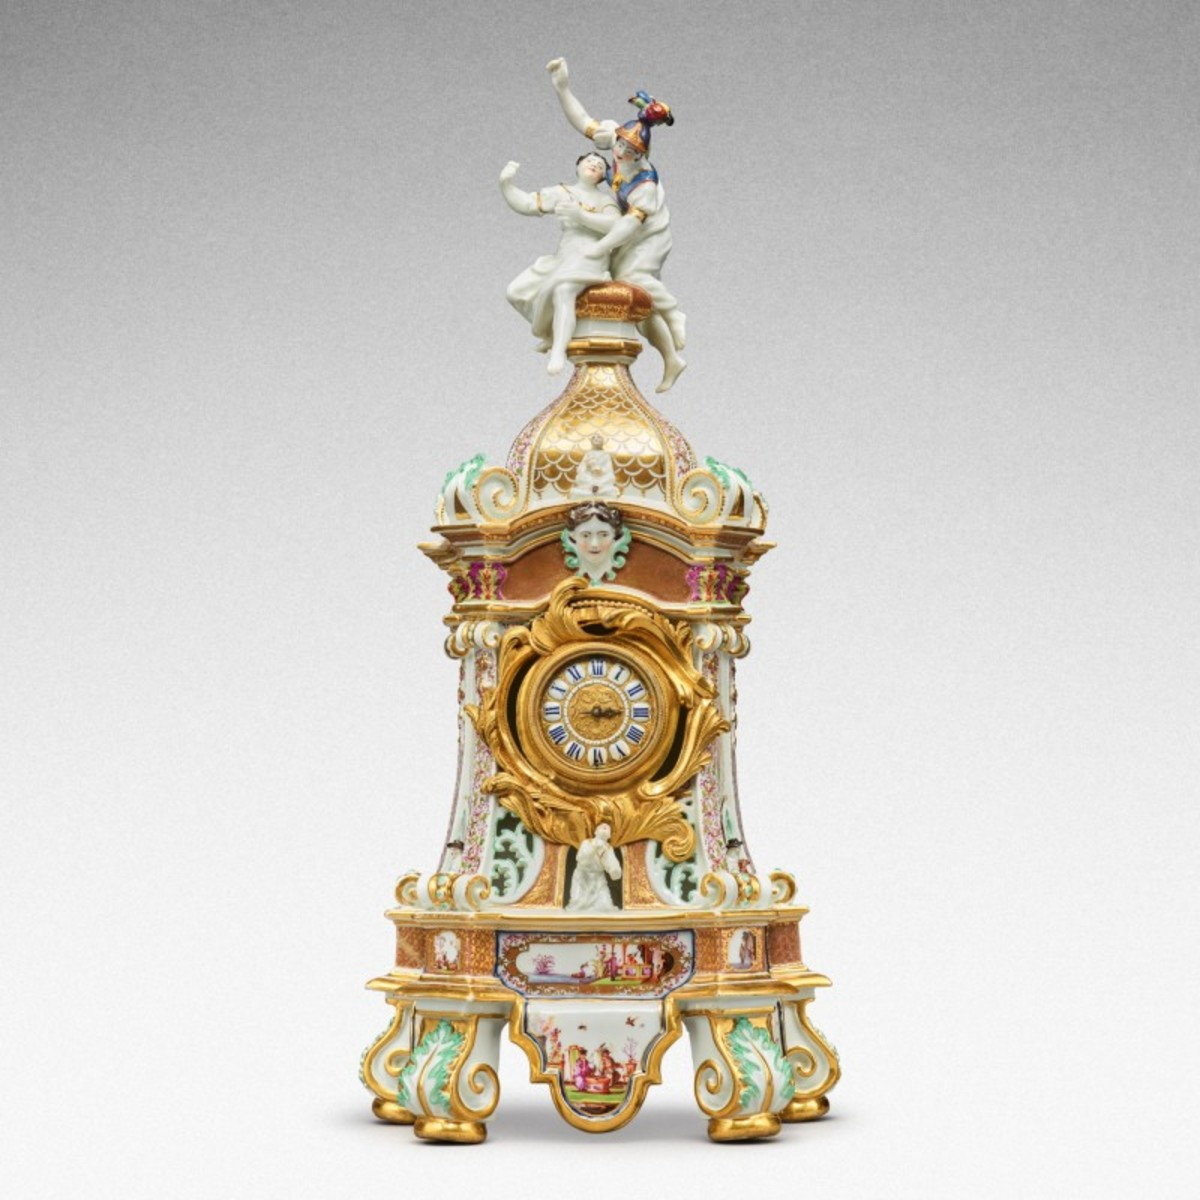 This highly important documentary and dated Meissen mantel clock case, dated 1727, was the top lot, selling for $1.5 million and soaring past its estimate of $200,000-$400,000.